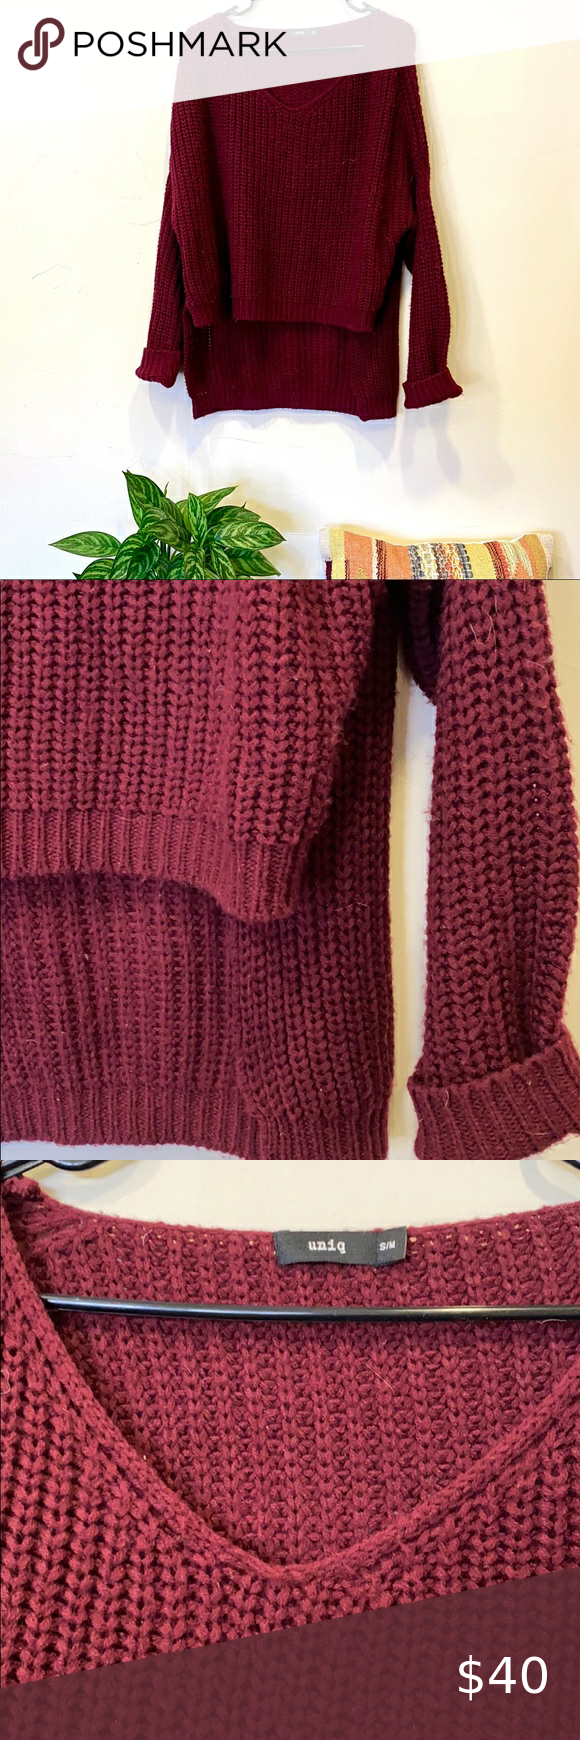 Tigris Sweater | Knit fashion, Sweaters, Knitted sweaters